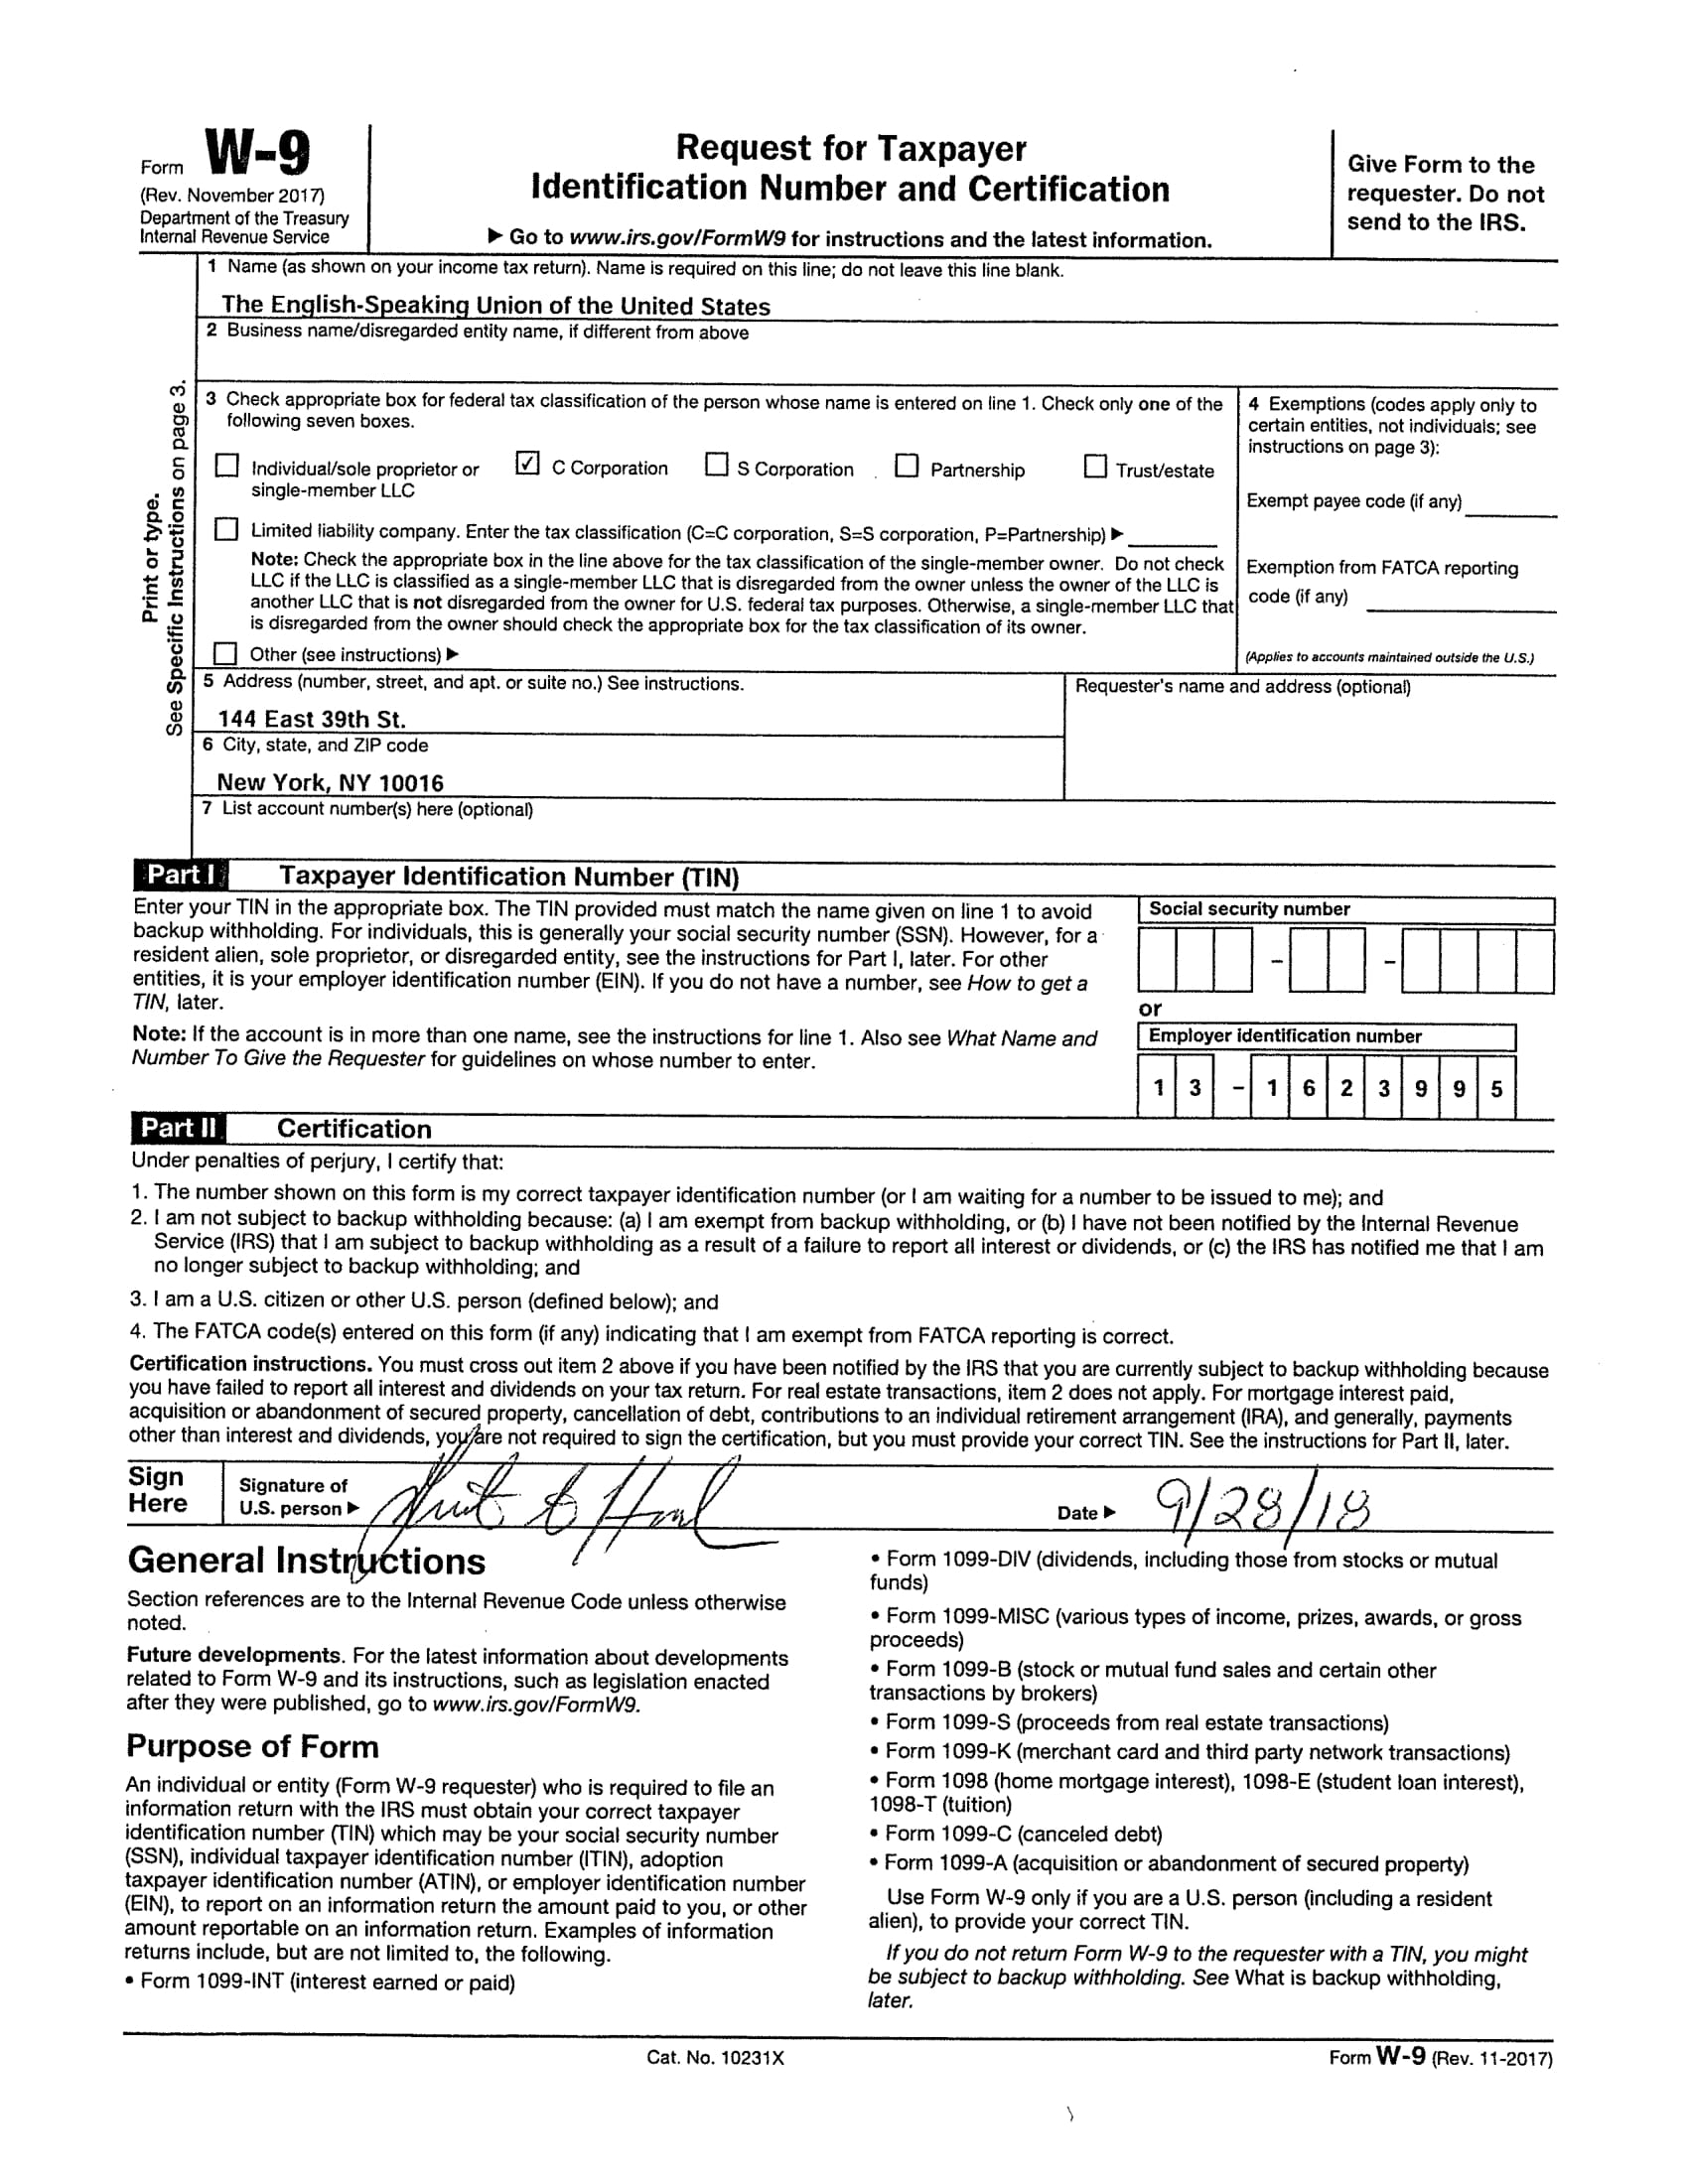 Get W-9 Form 2020 | Calendar Printables Free Blank pertaining to W 9 Forms To Print